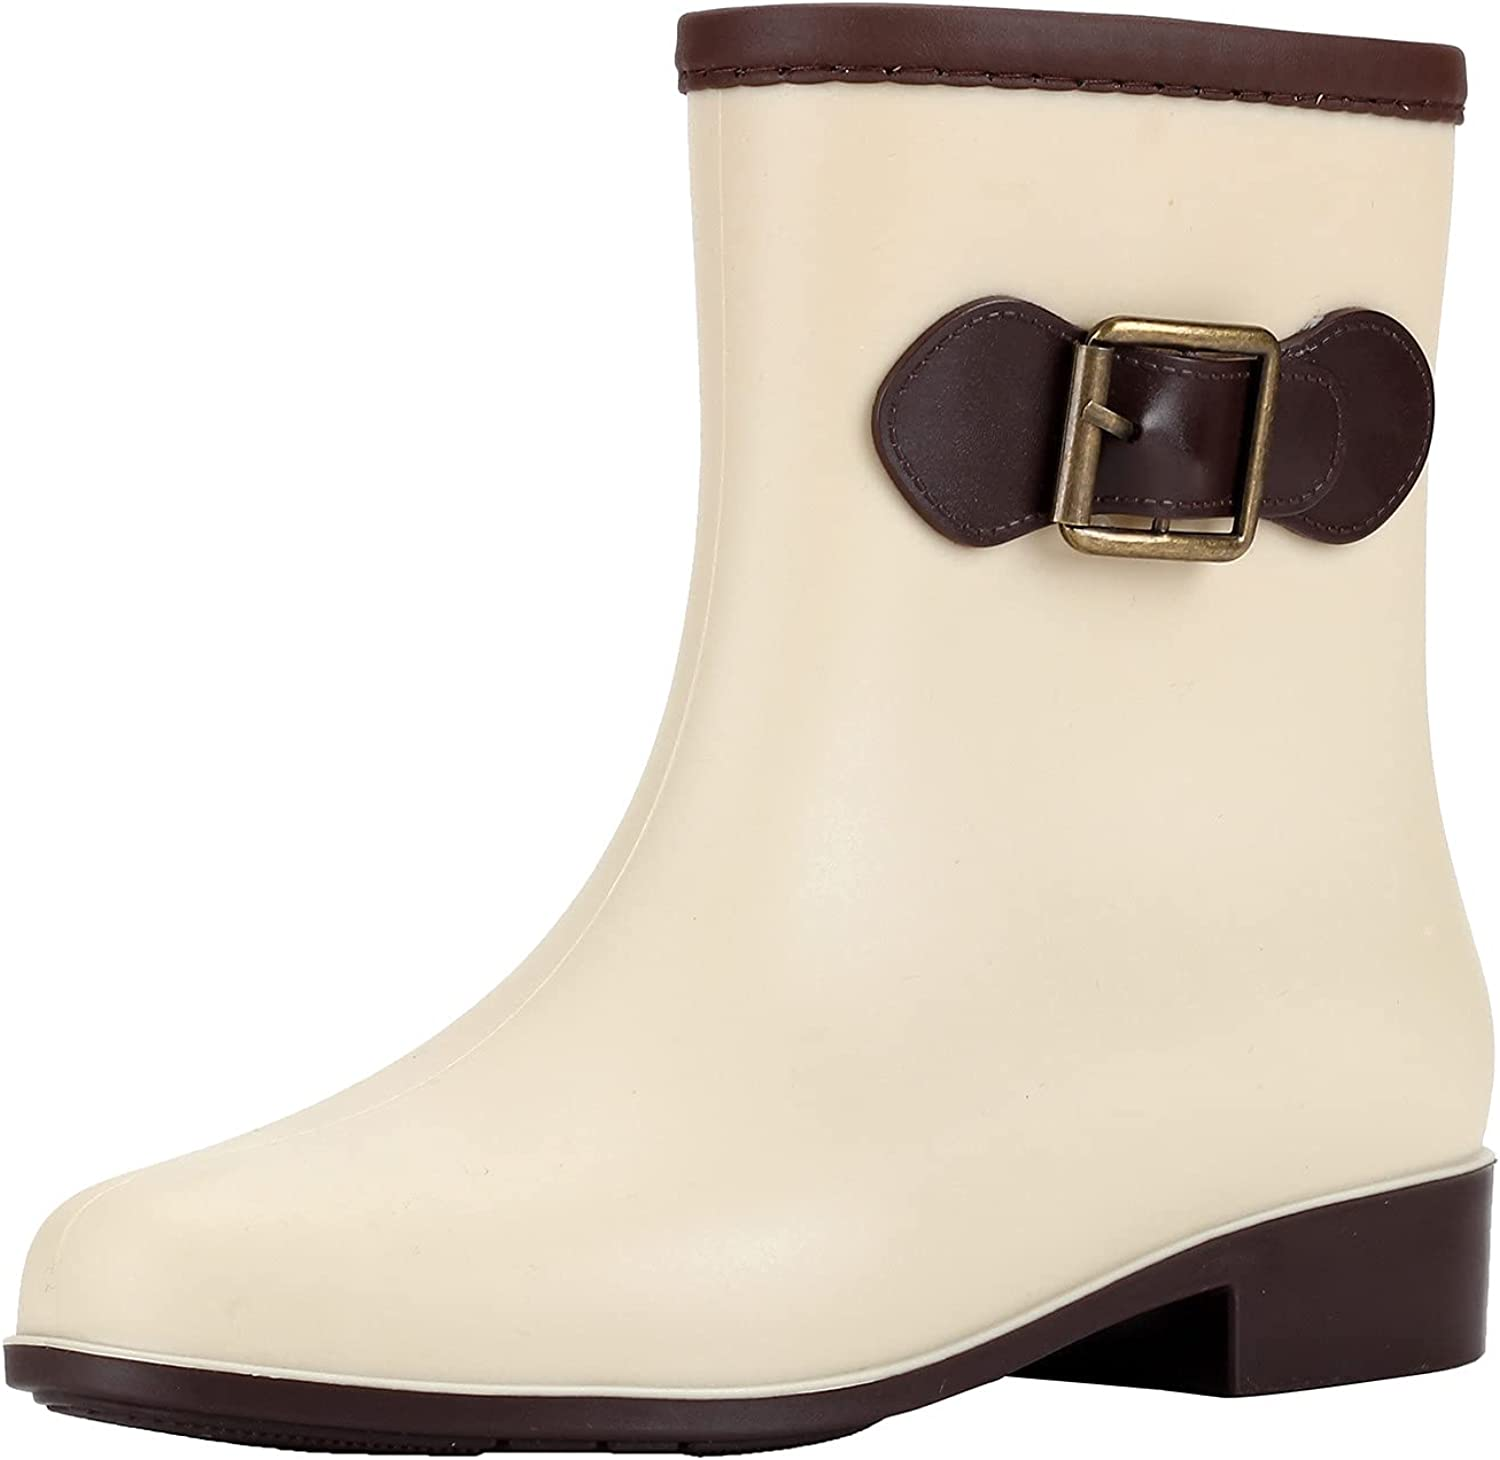 Euone_Clothes Women's Boots Low-Heeled Buckle Round Toe Shoe Waterproof Middle Tube Rain Boots